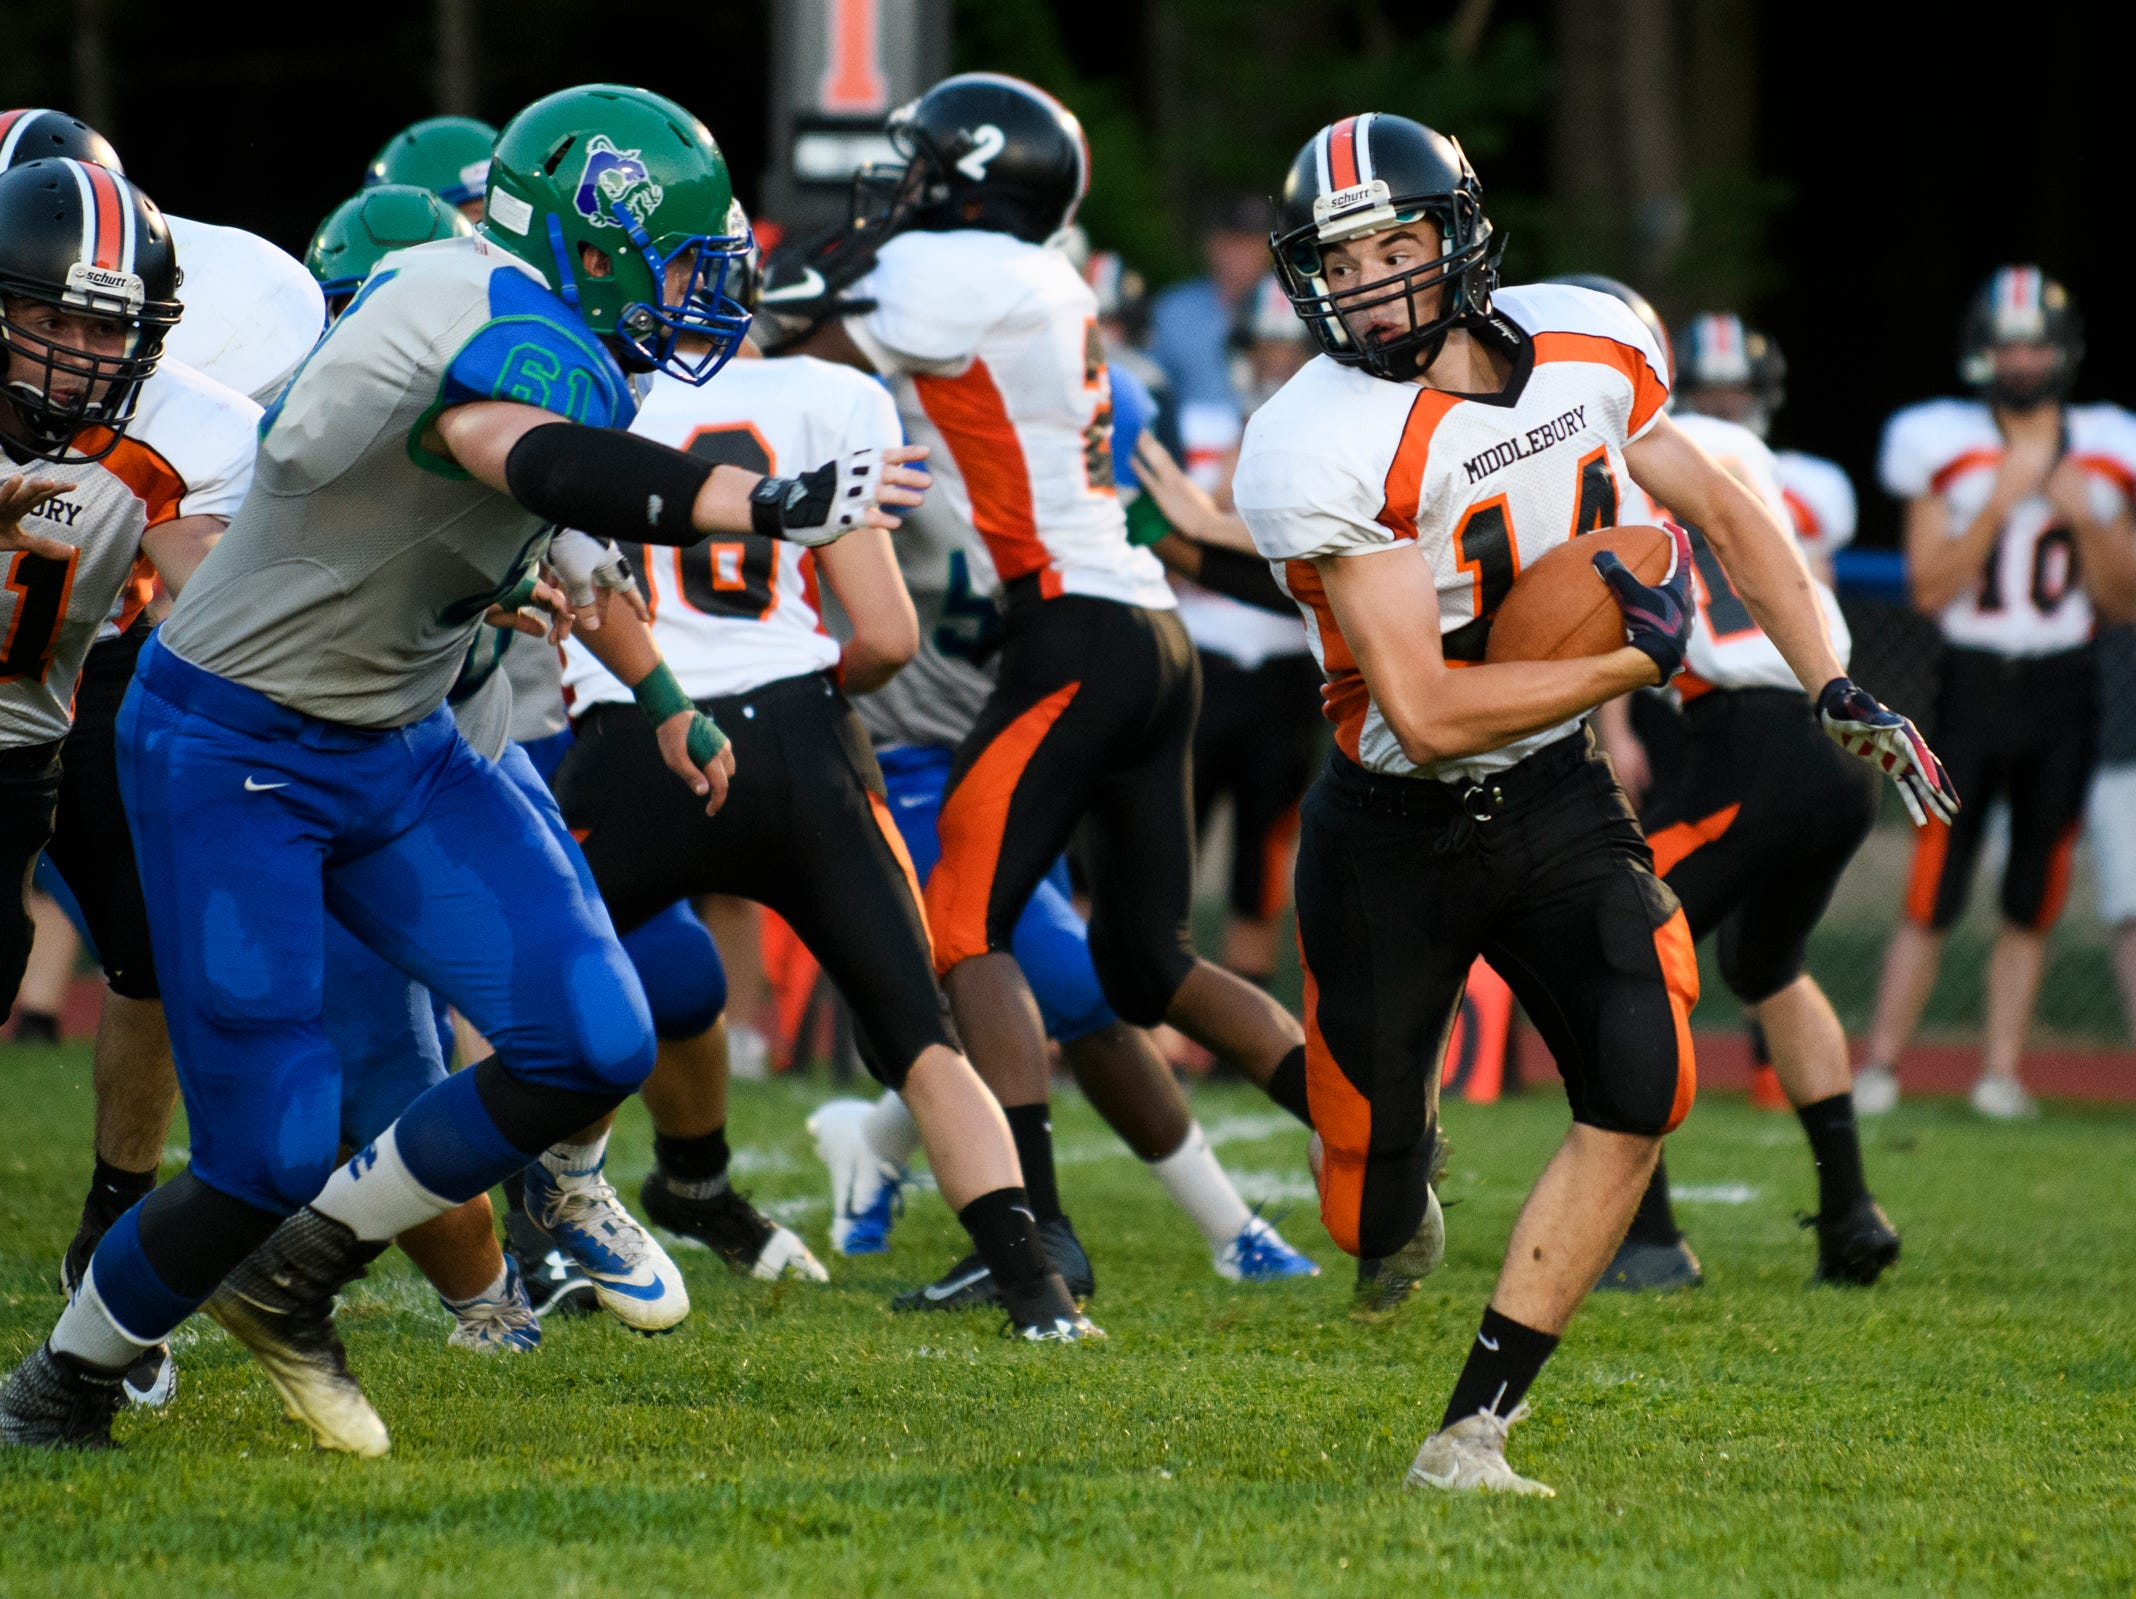 Middlebury's Tyler Buxton (14) runs with the football during the boys high school football game between Middlebury and Colchester at Colchester high school on Friday night August 31, 2018 in Colchester.